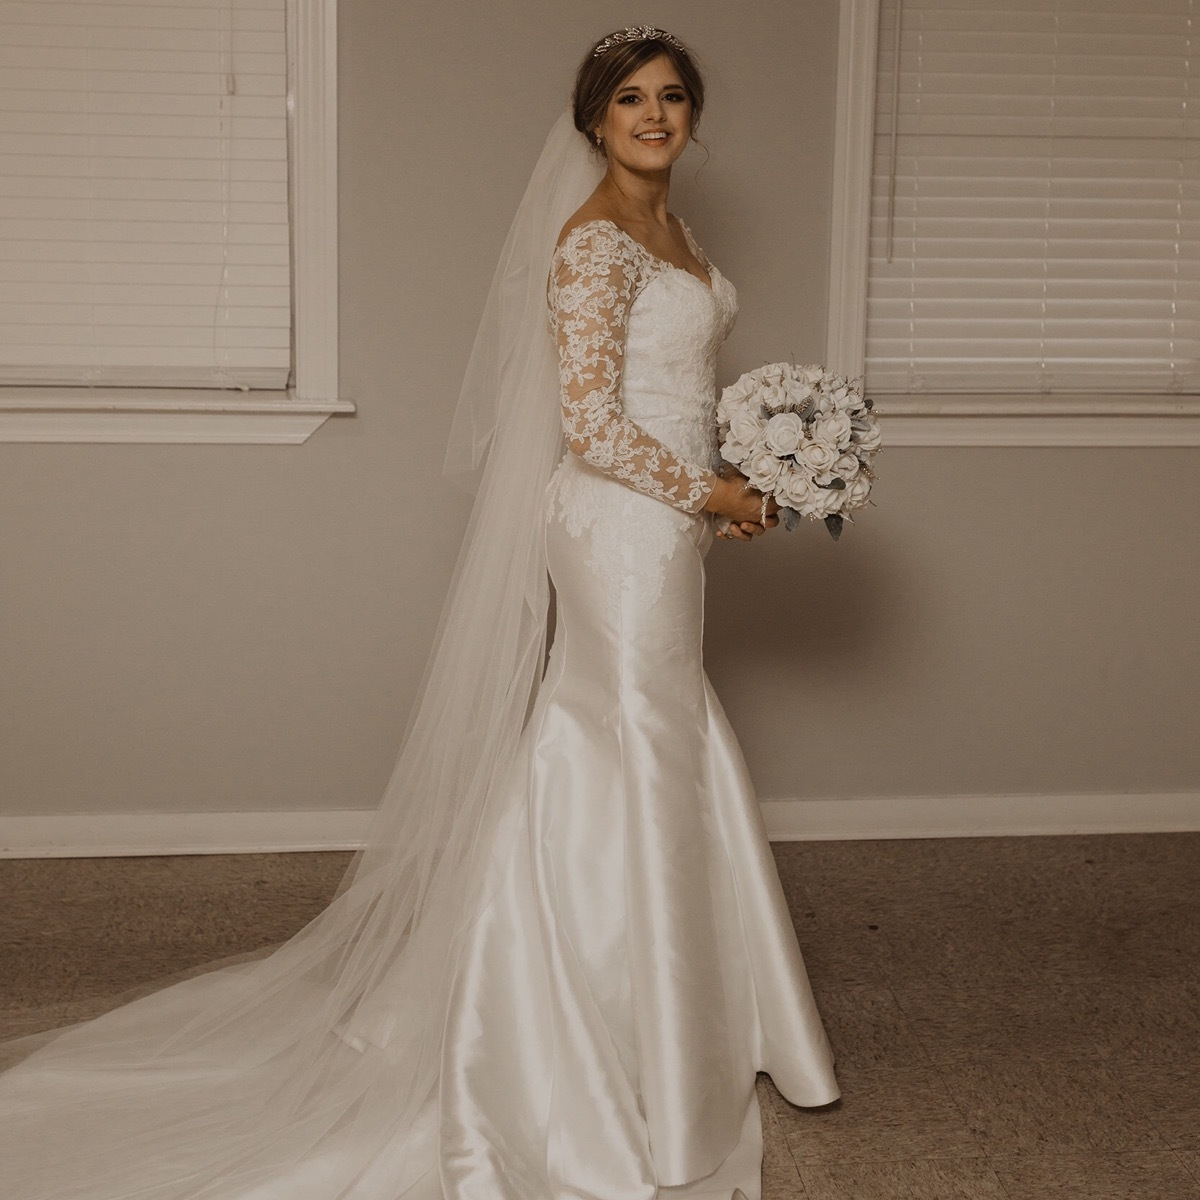 Anomalie custom soft white, fit-flare silhouette wedding dress with long sleeves, lace detailing, and deep v back, Louisiana wedding